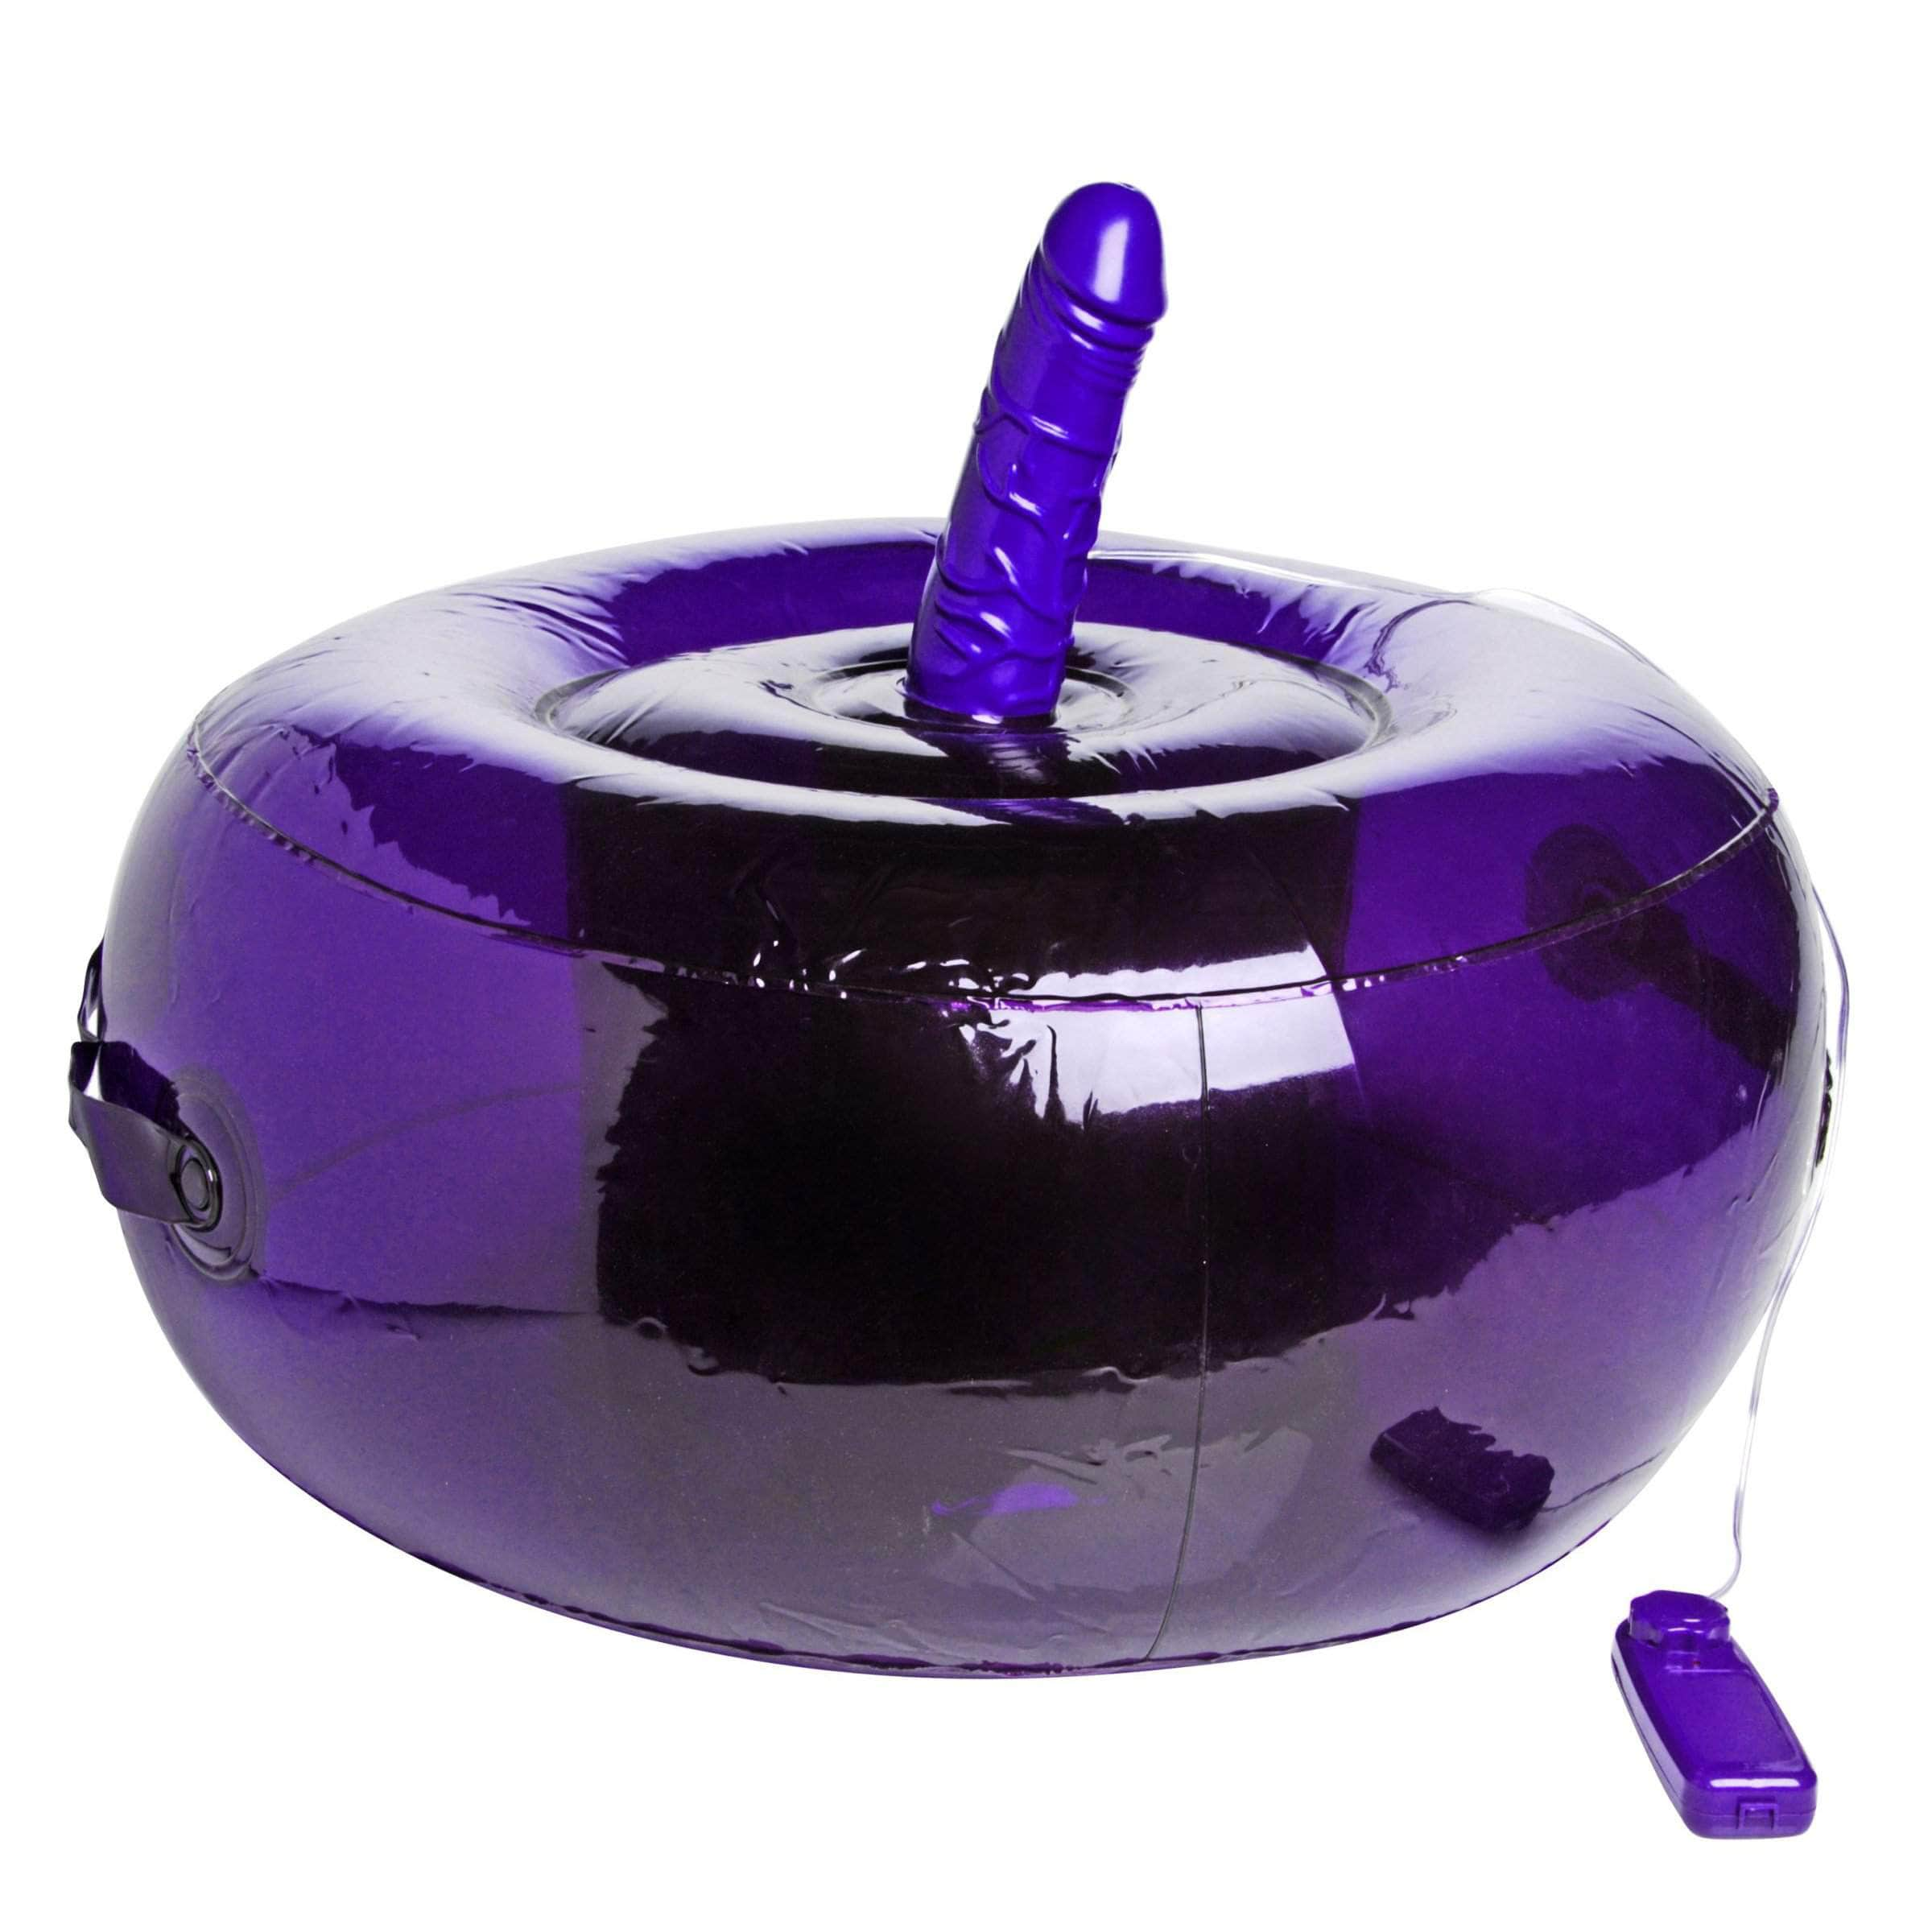 Sit-and-ride Inflatable Seat With Vibrating Dildo - Purple